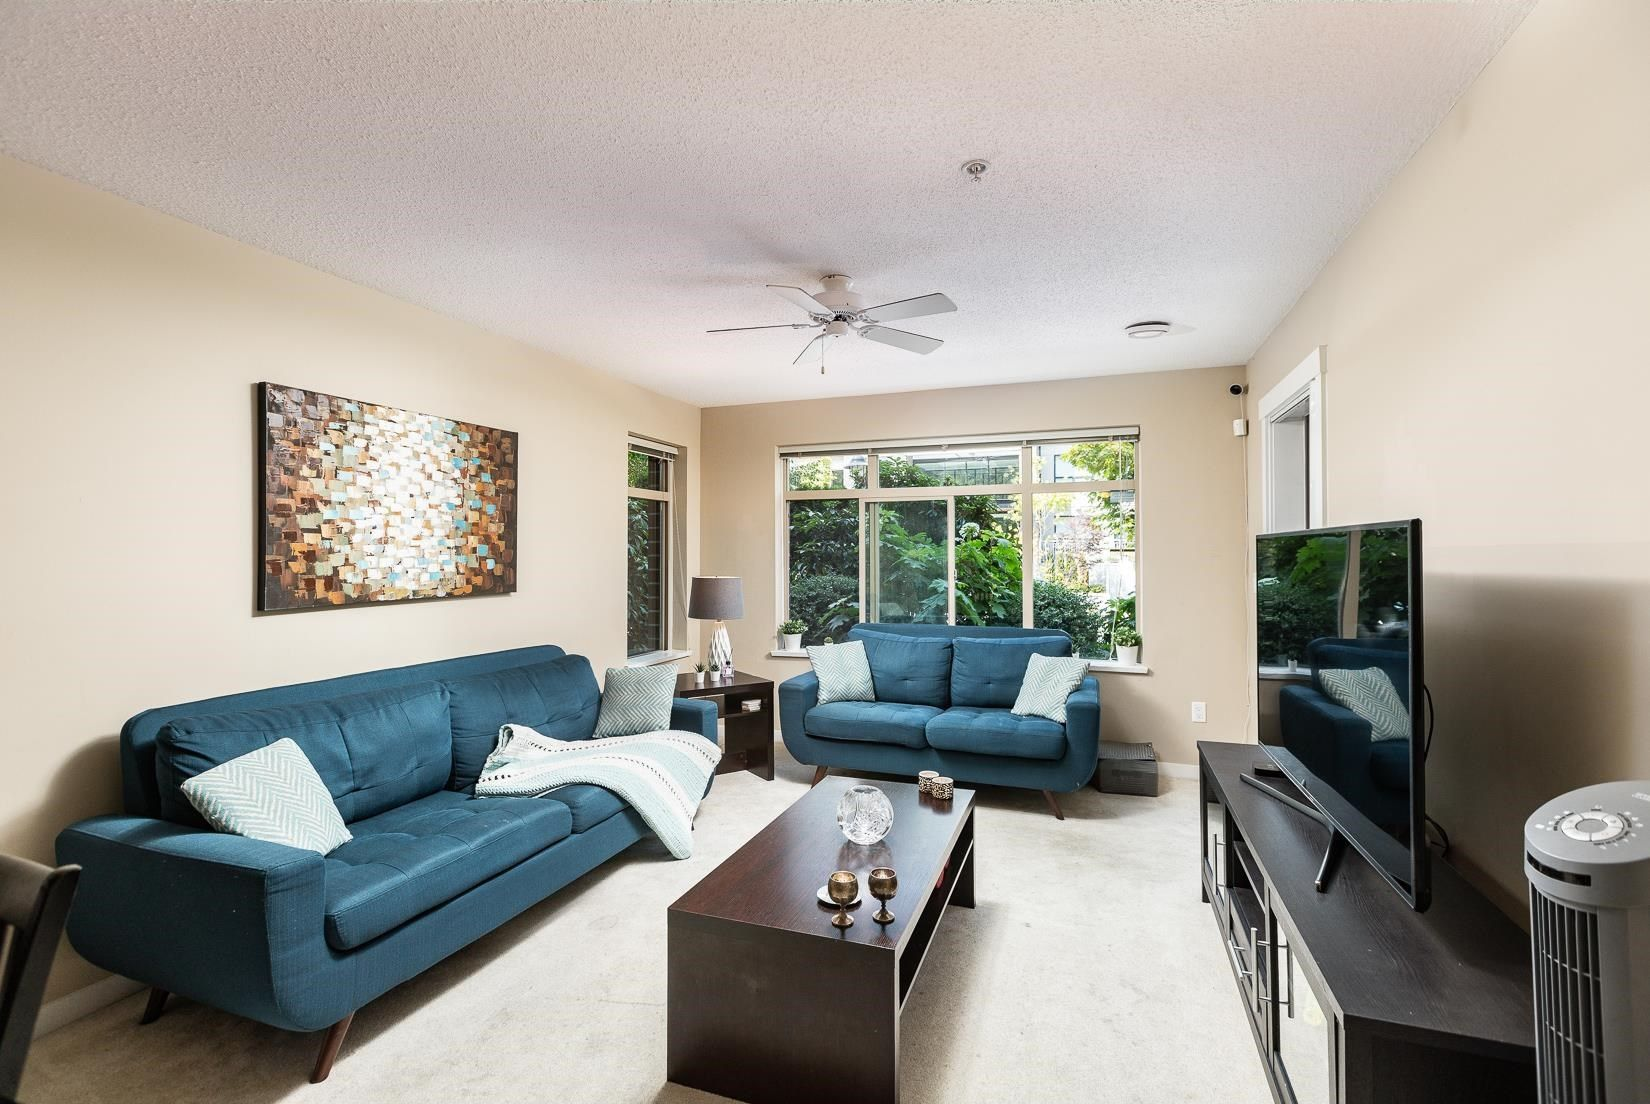 """Main Photo: 131 9288 ODLIN Road in Richmond: West Cambie Condo for sale in """"MERIDIAN GATE"""" : MLS®# R2601472"""